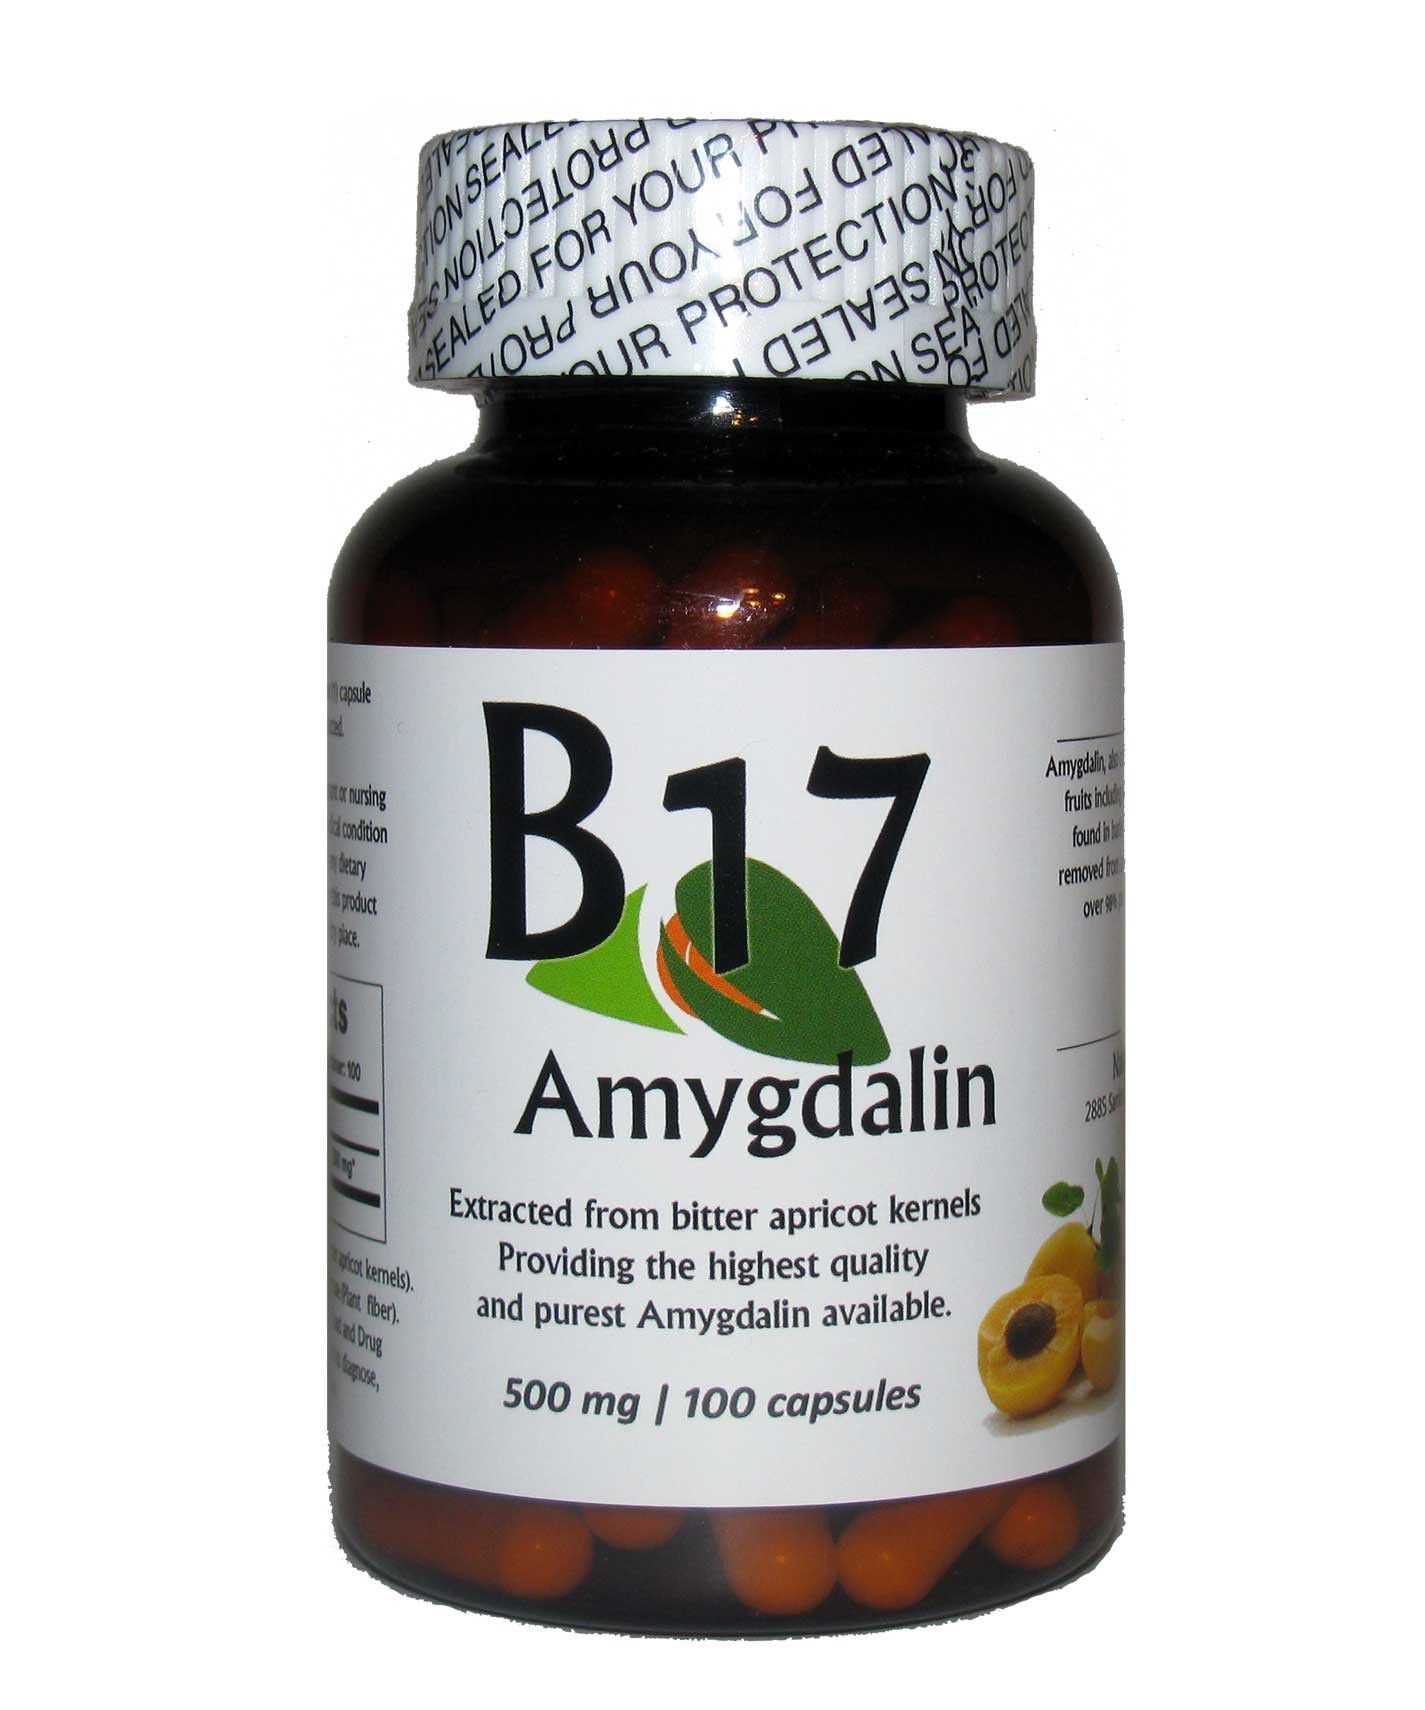 Amygdalin is highly toxic, however, this is also true of the chemo treatments for cancer currently.